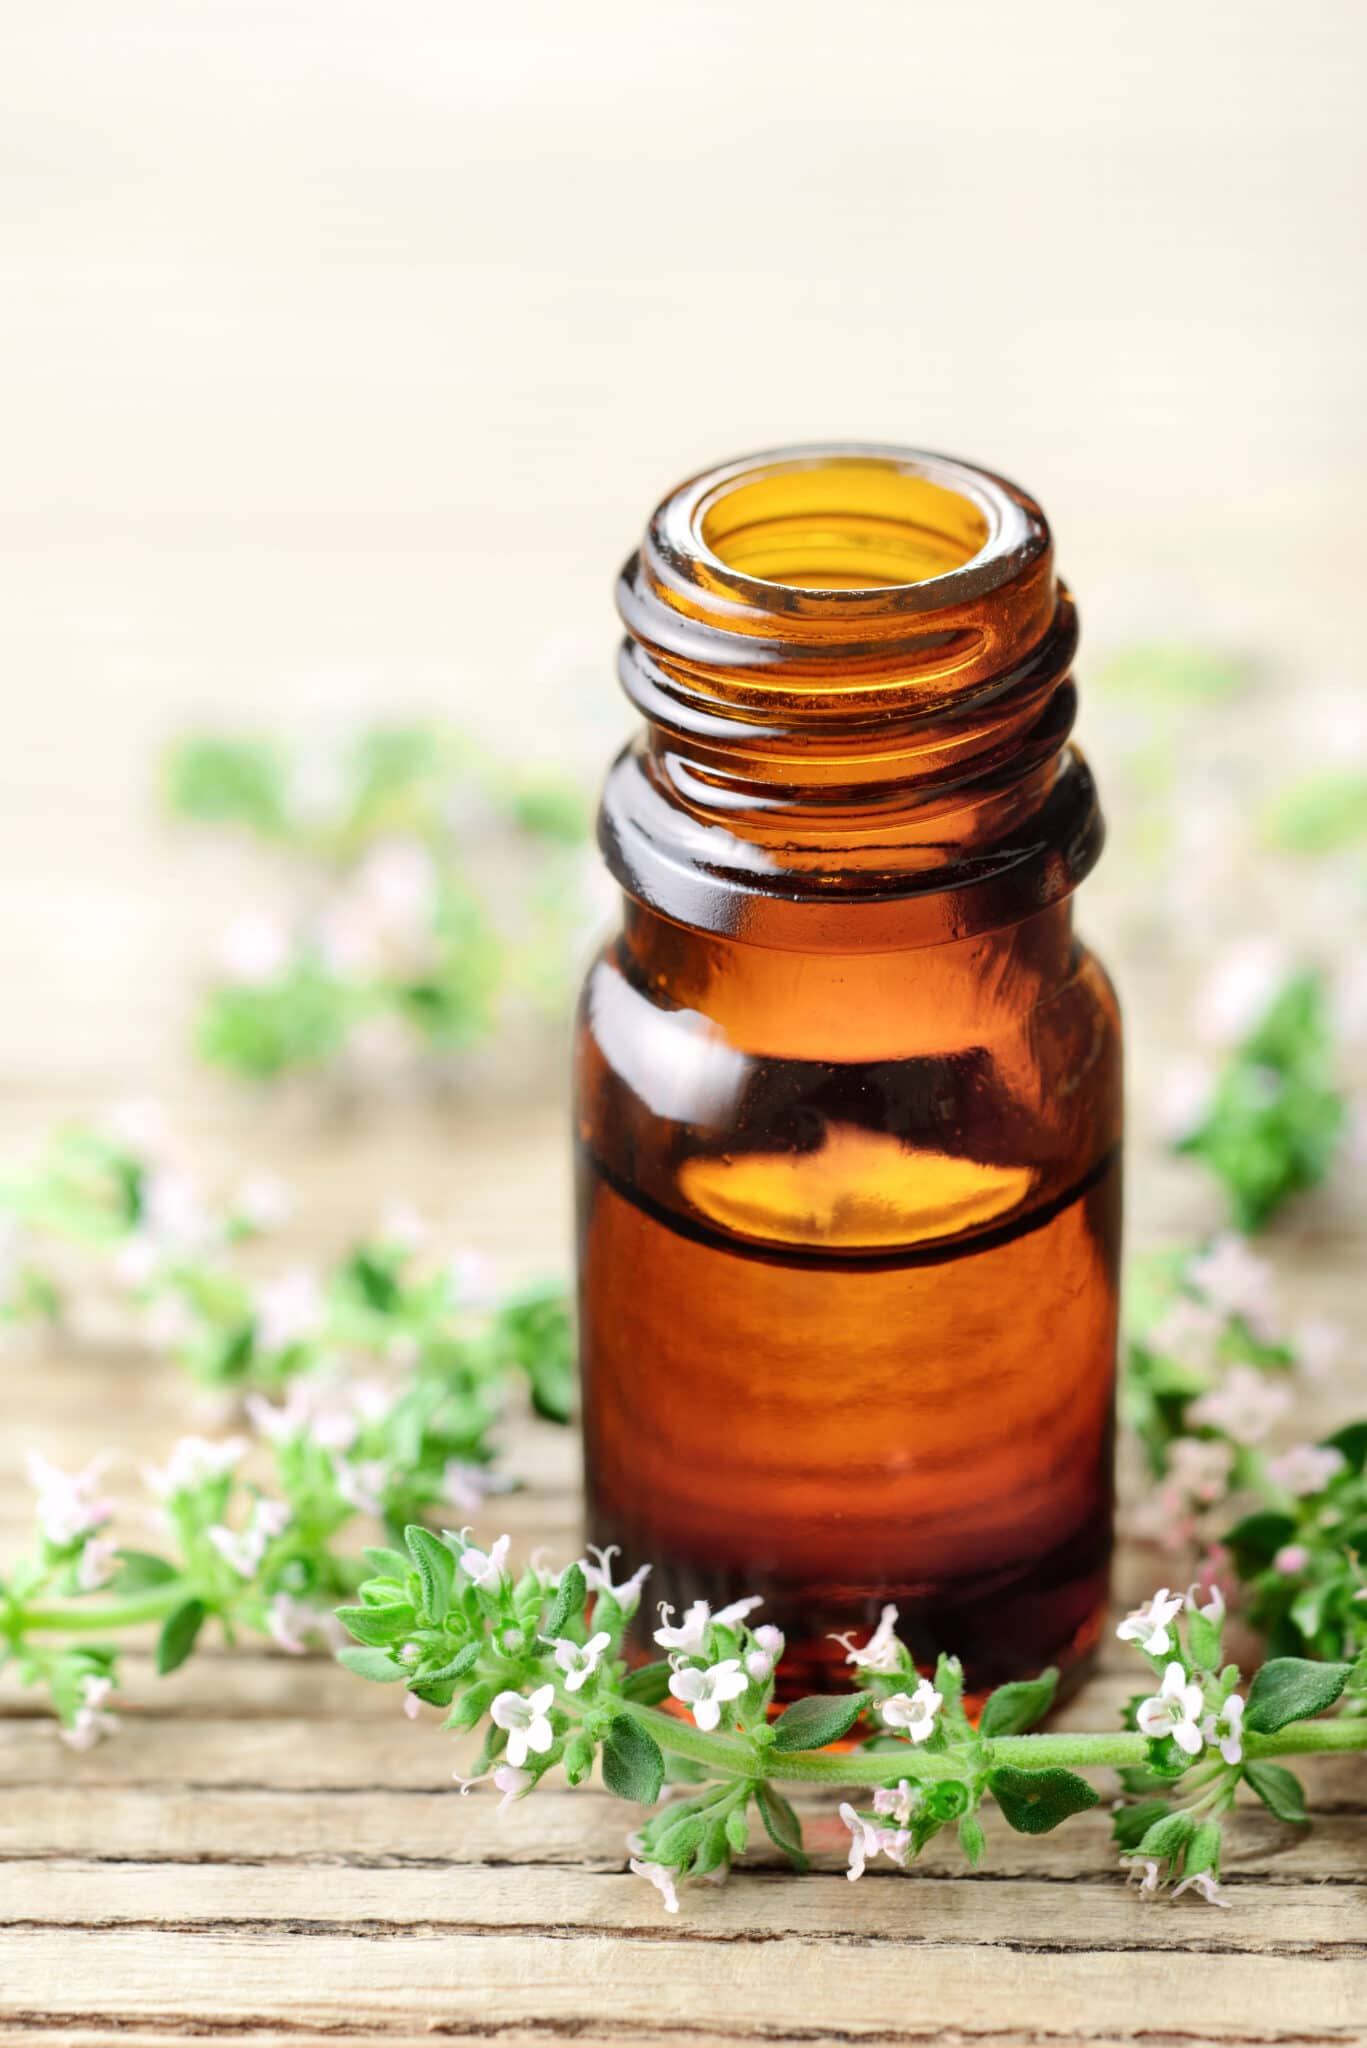 Thyme essential oil in the glass bottle, with thyme flowers